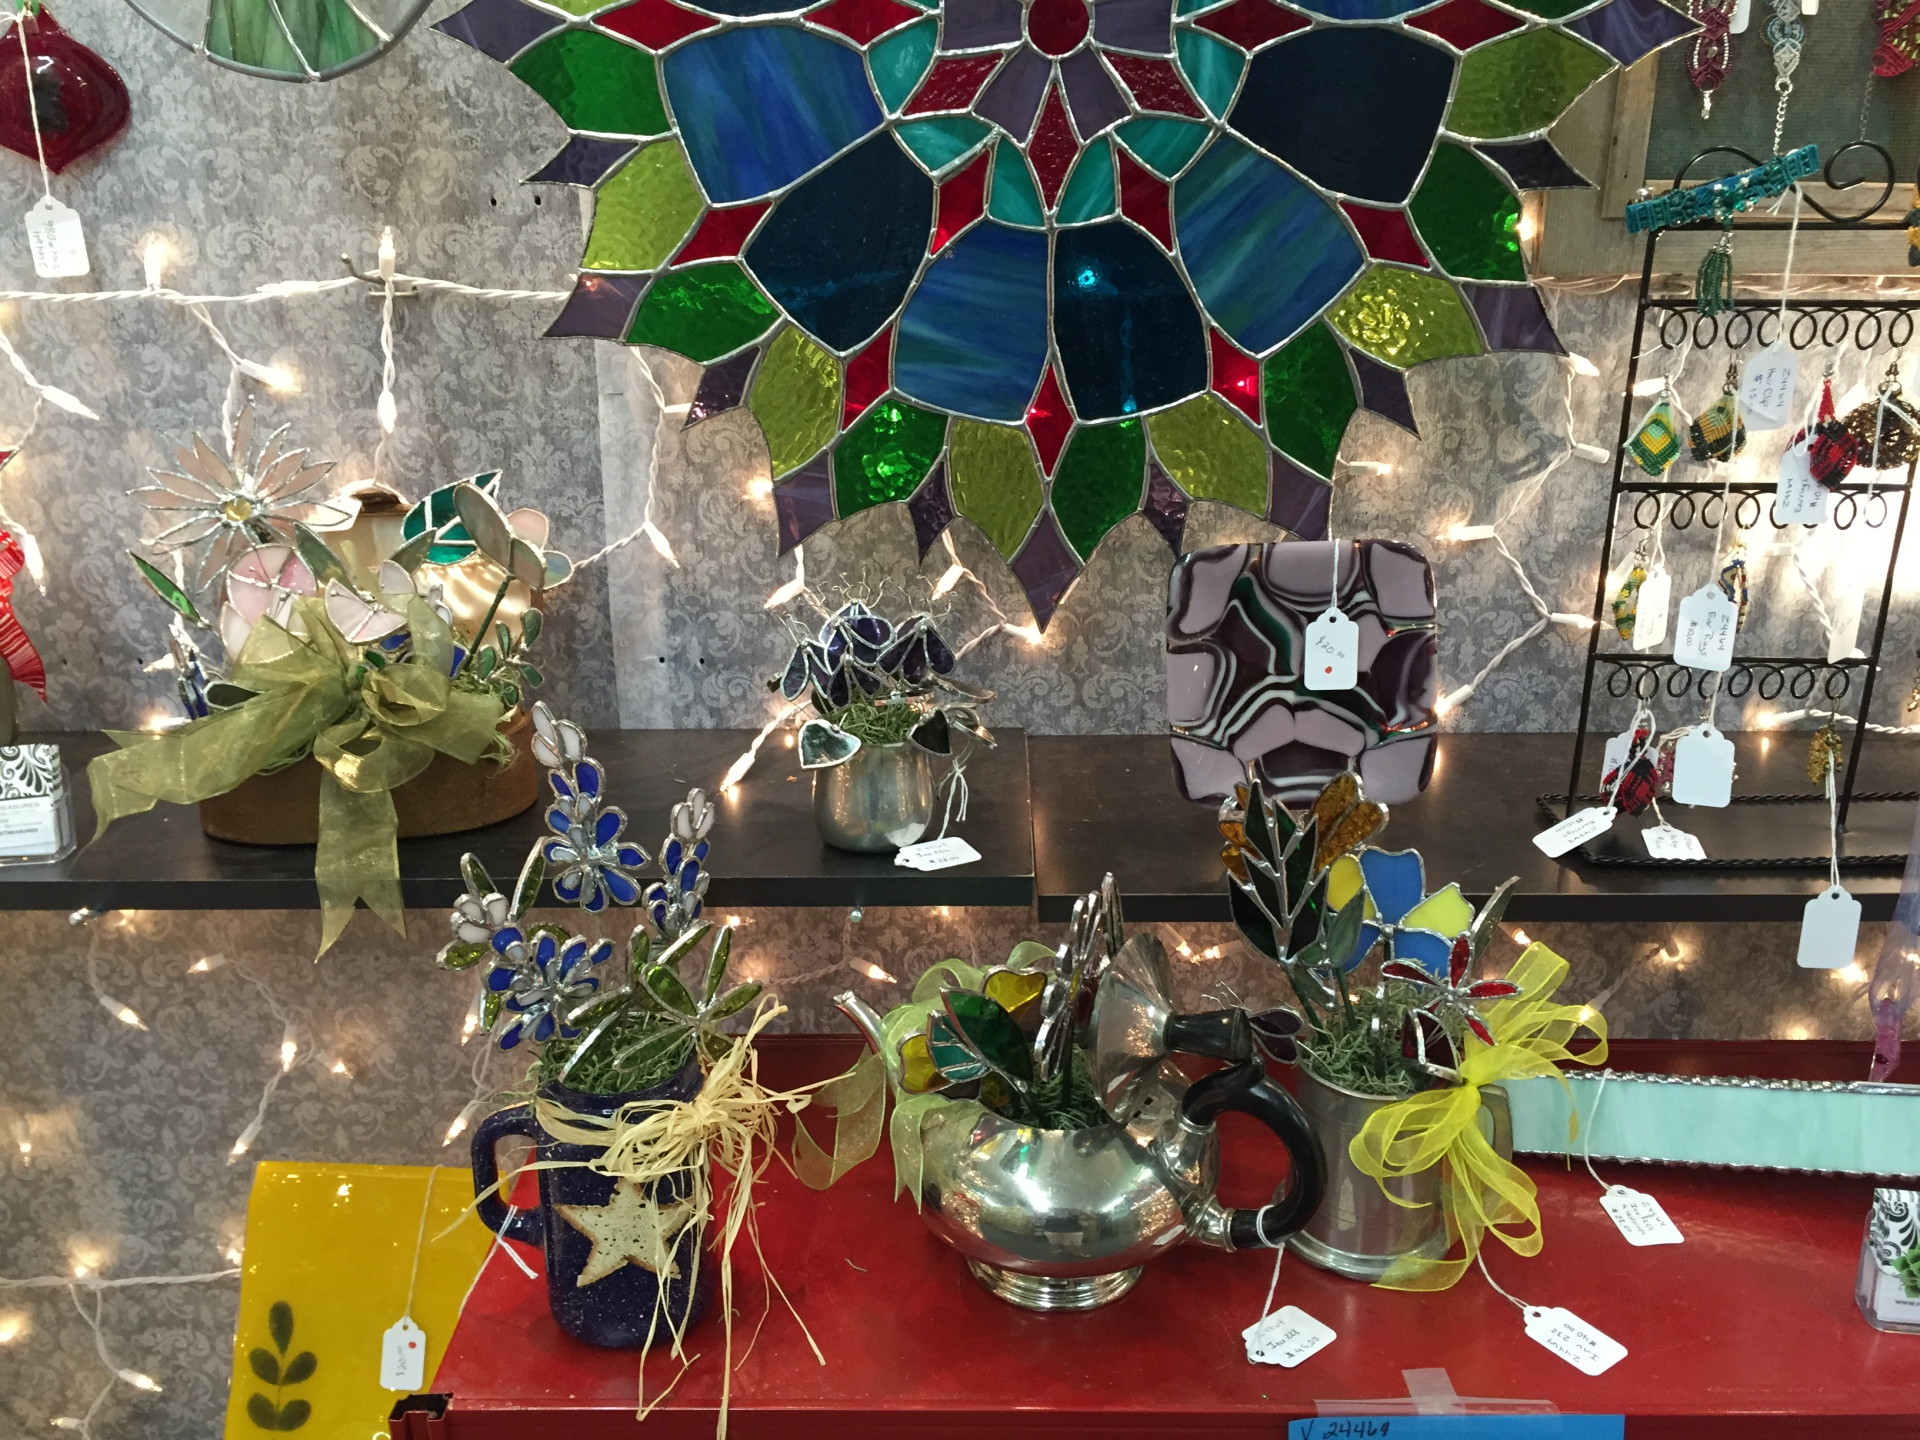 Wonderful handmade stained glass that is locally made.